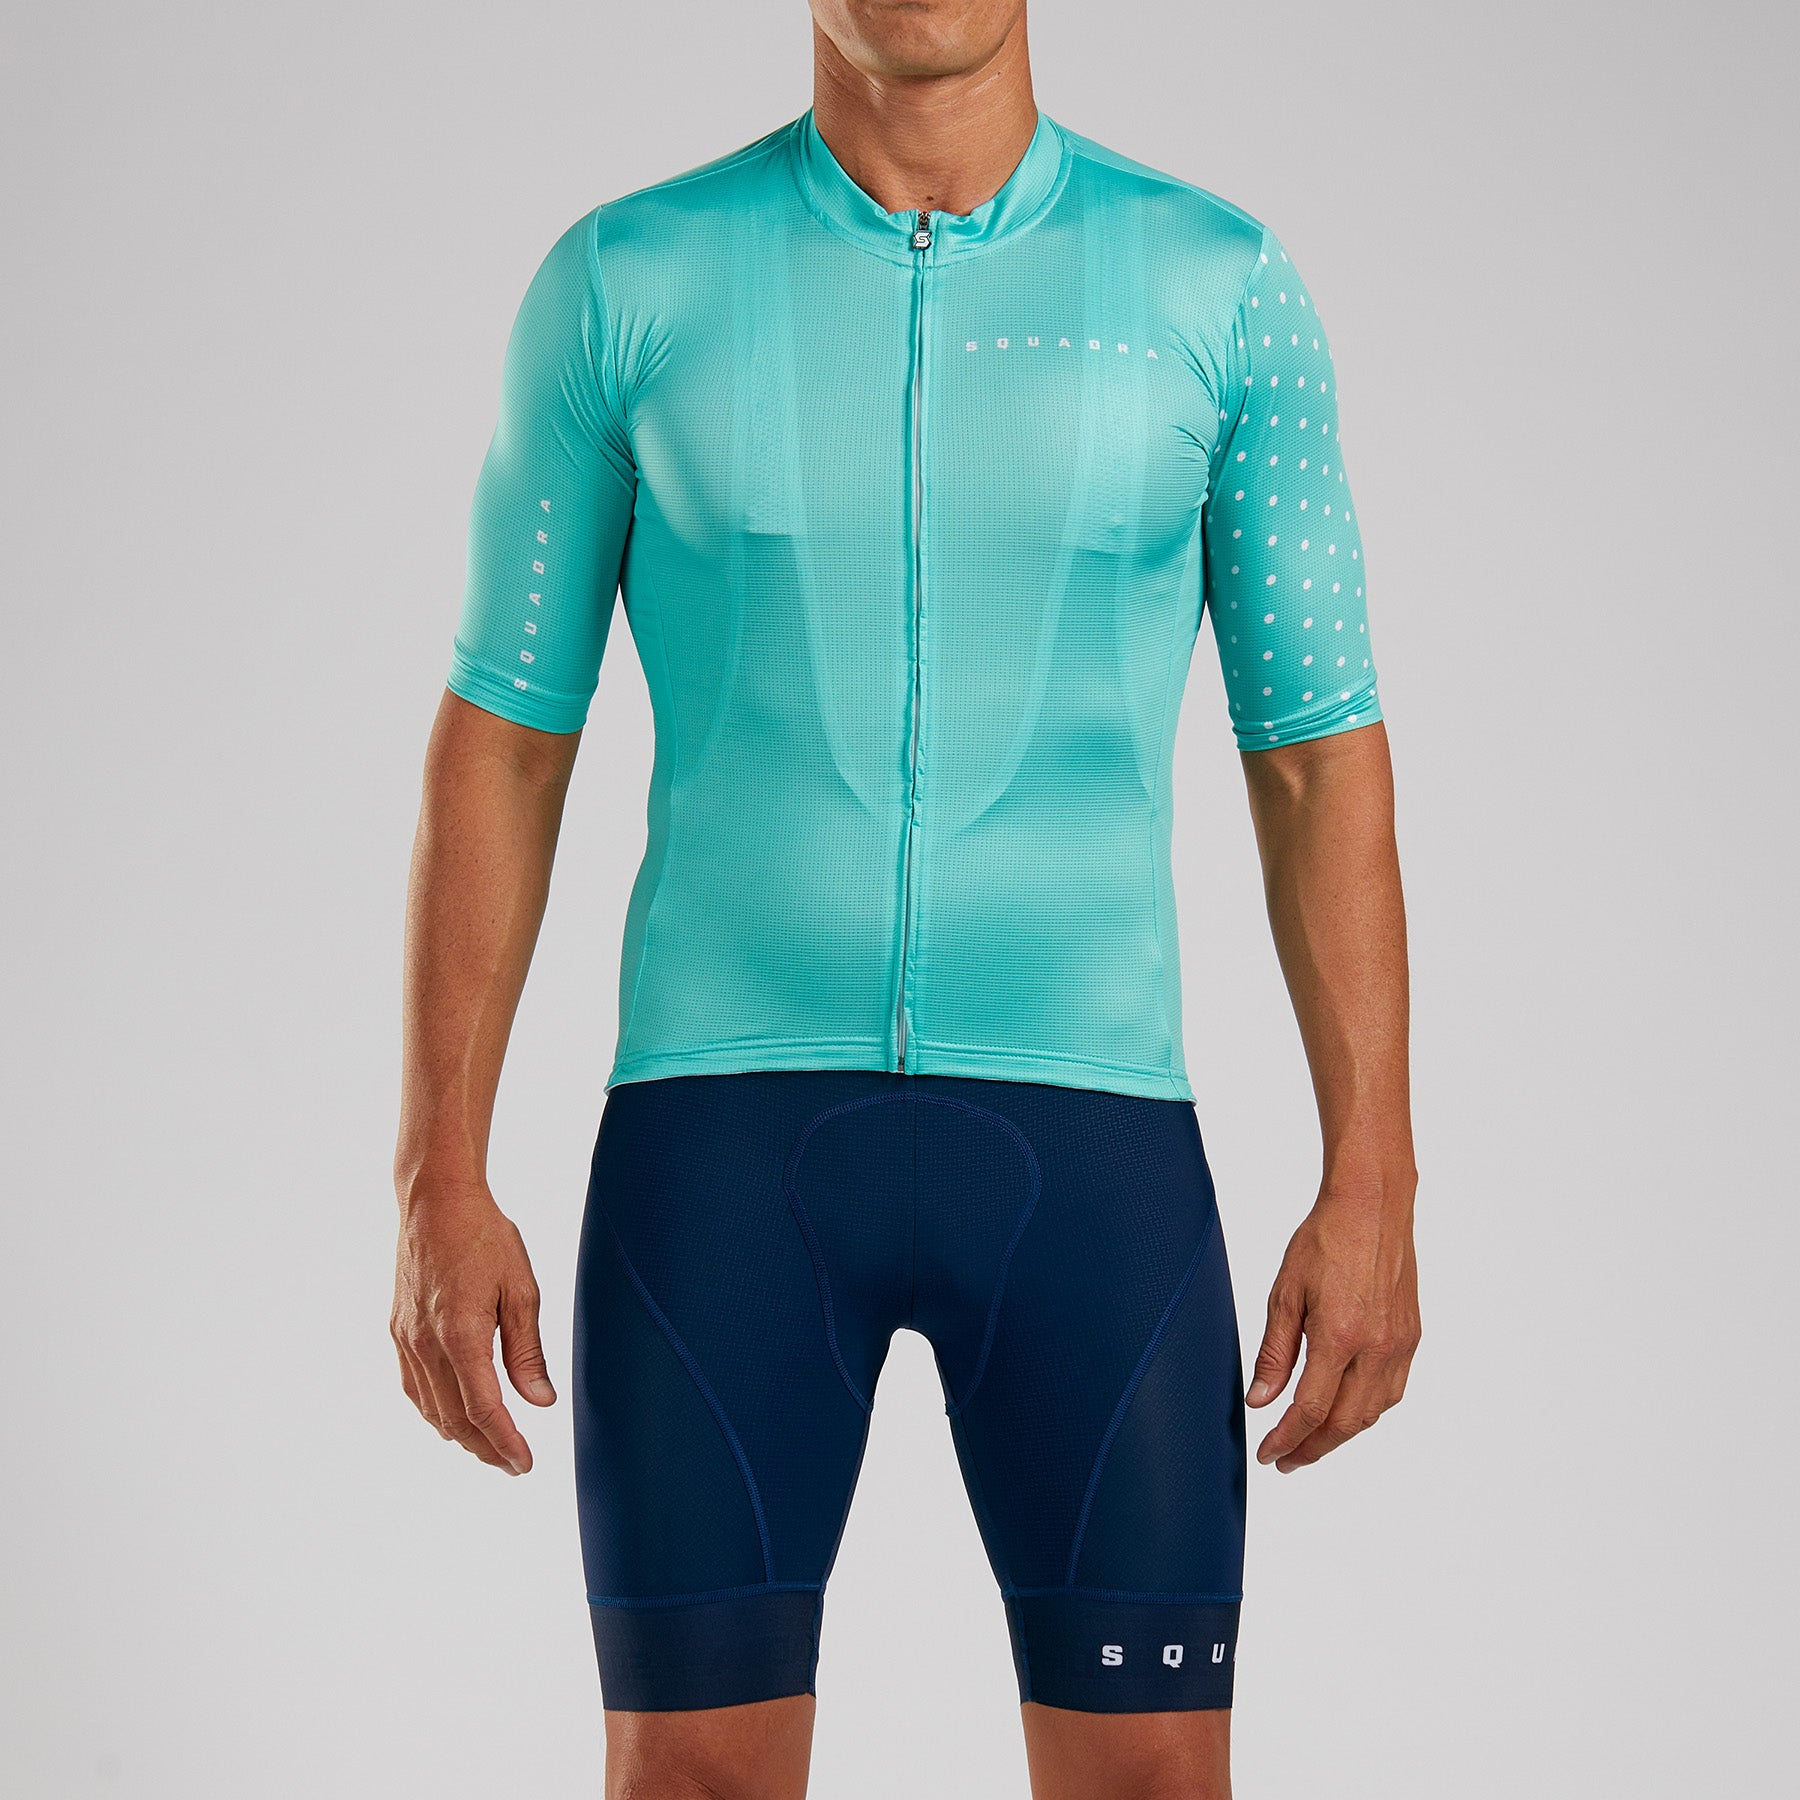 Squadra mens cycle jersey